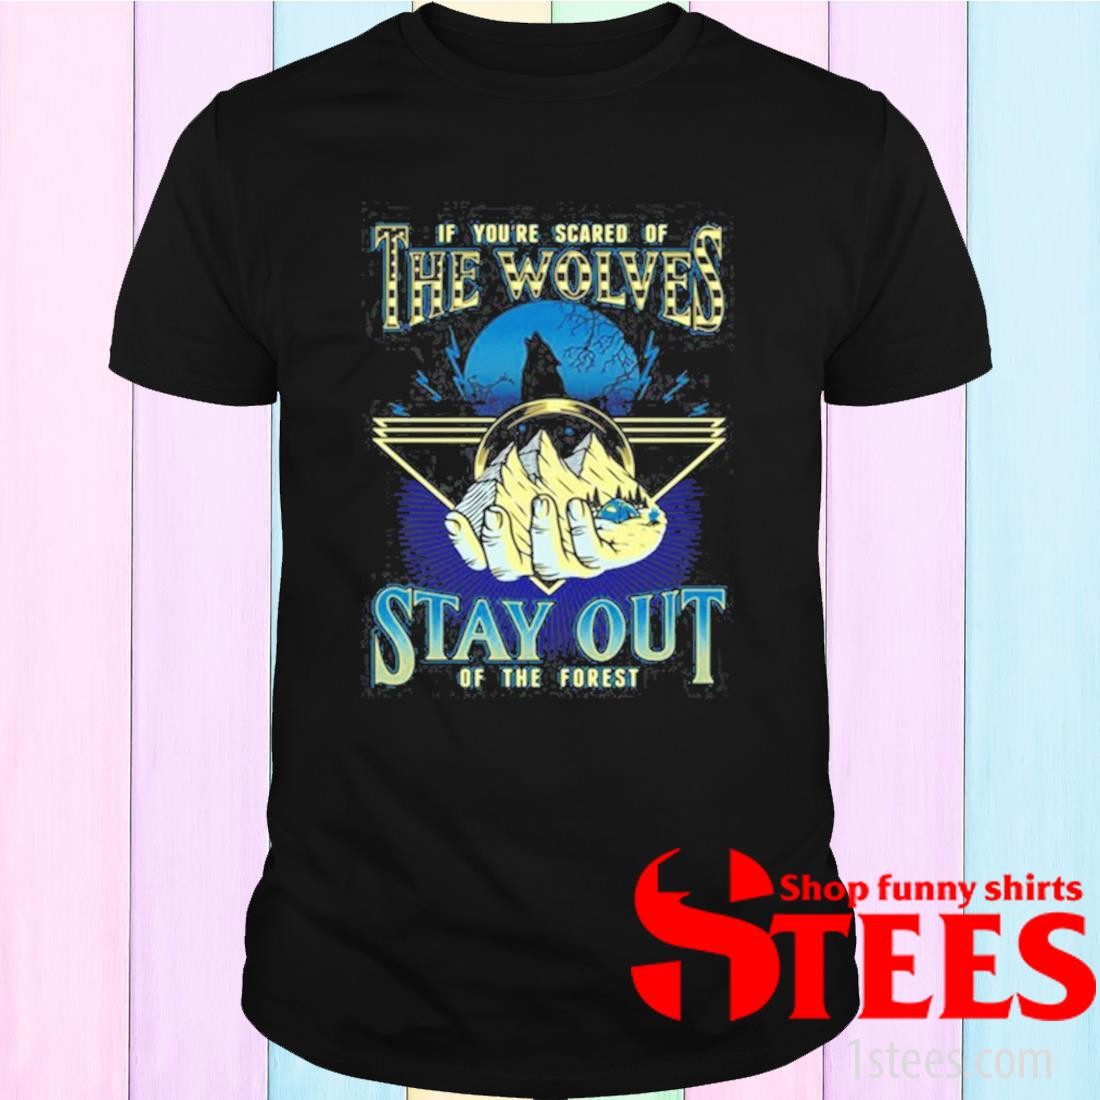 If You're Scared Of The Wolves Stay Out Of The Forest Shirt